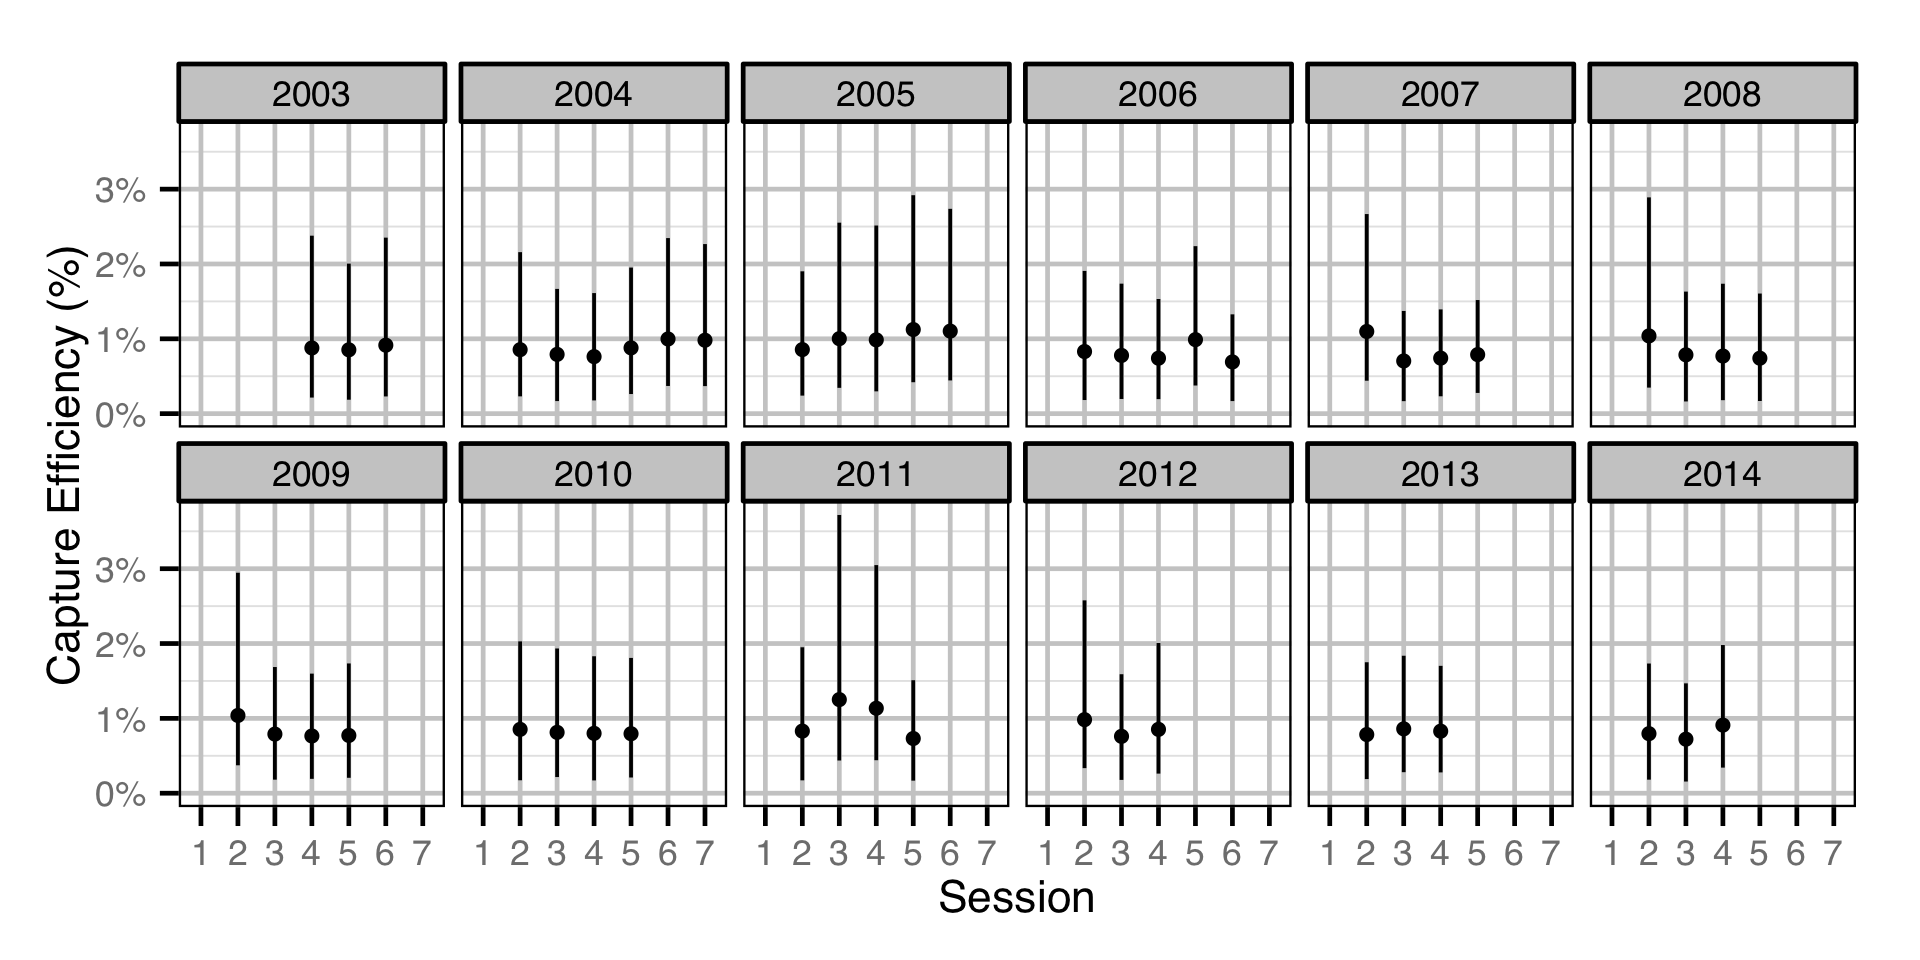 figures/efficiency/Subadult MW/session-year.png